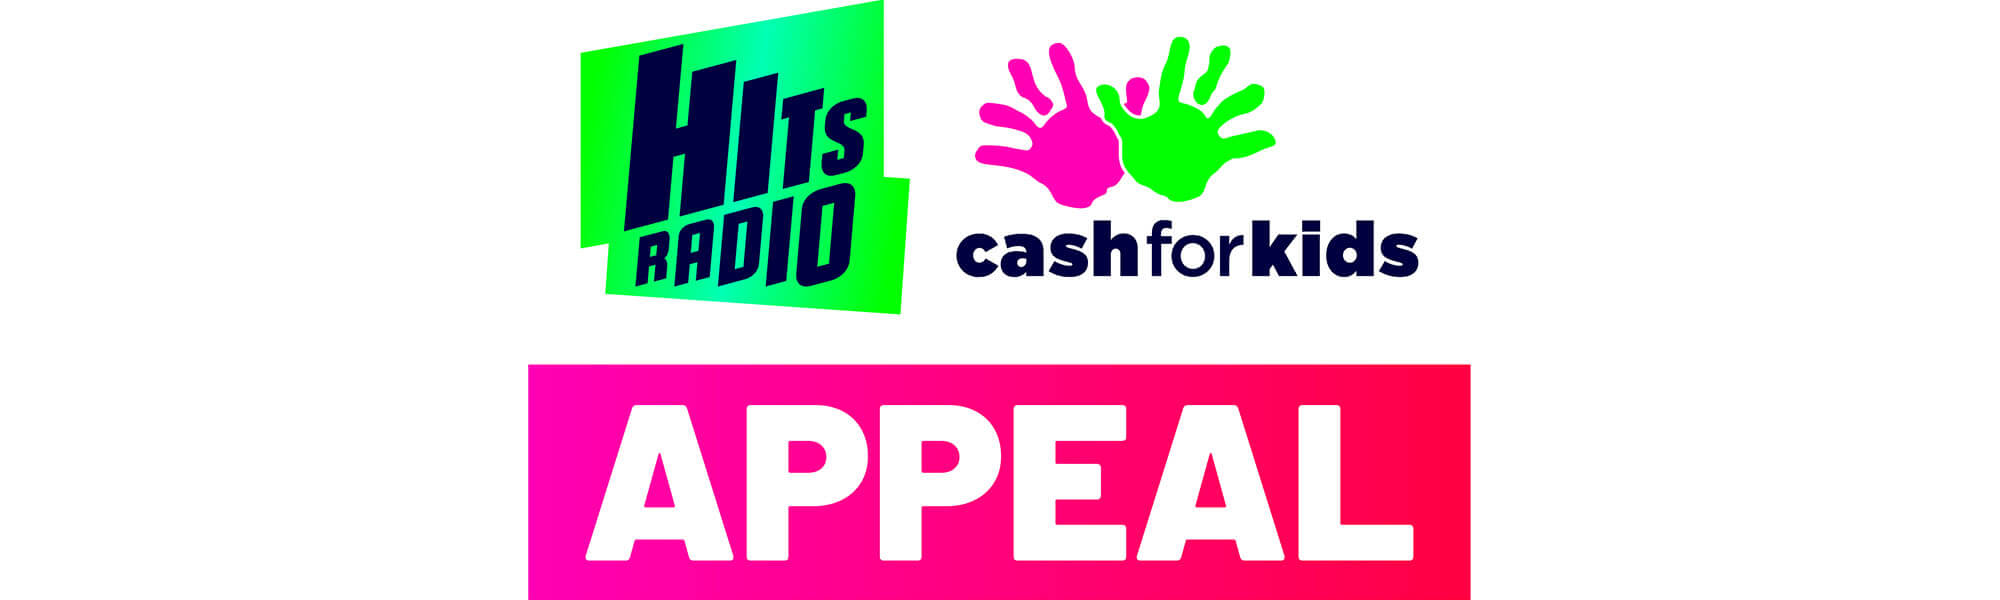 AO smile and hits radio cash for kids